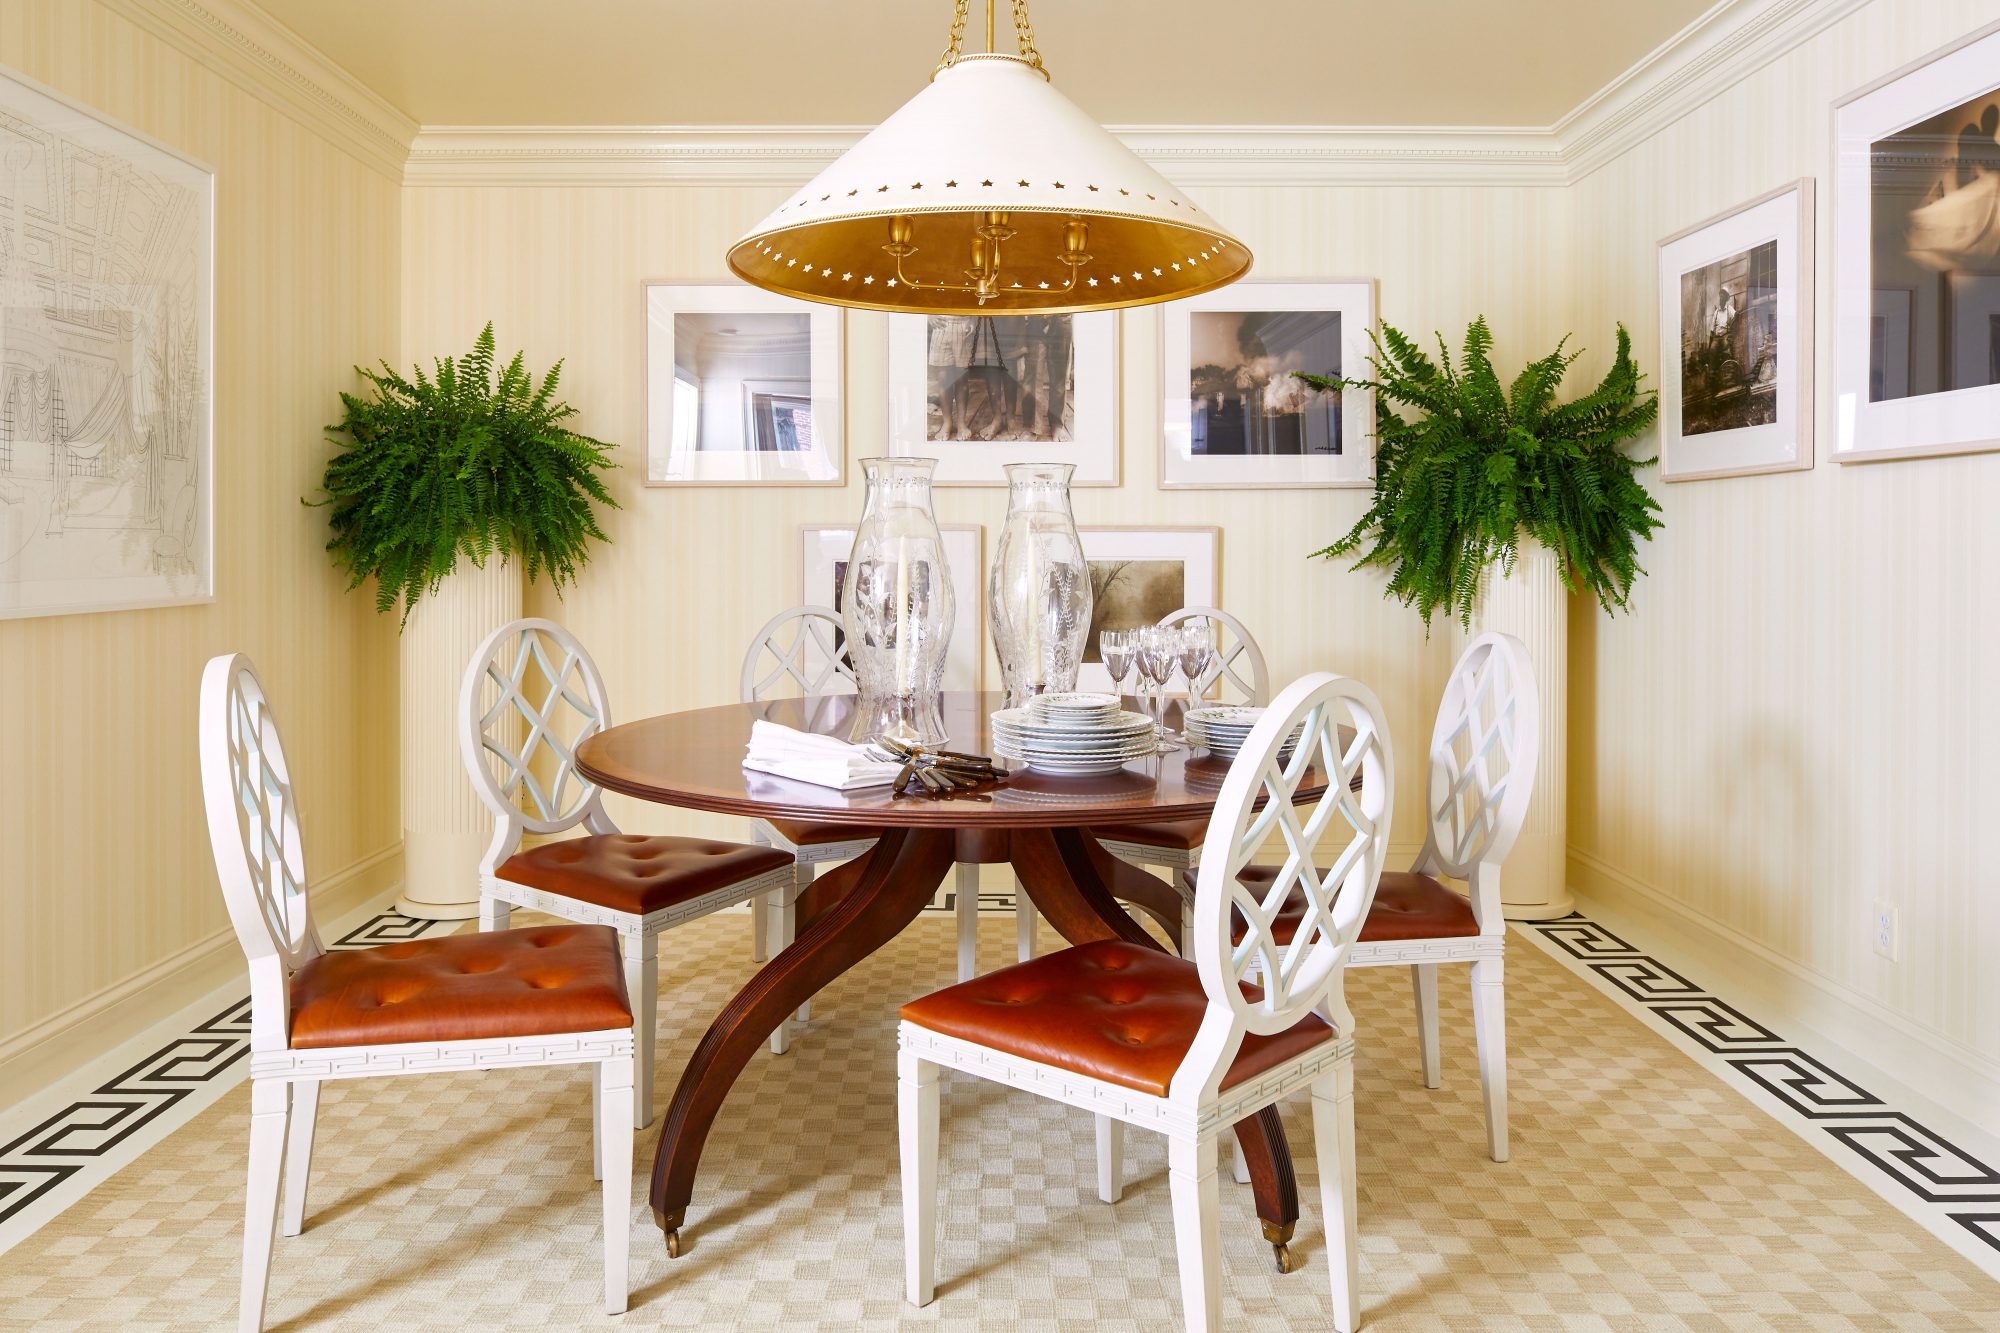 Formal dining room with modern accents